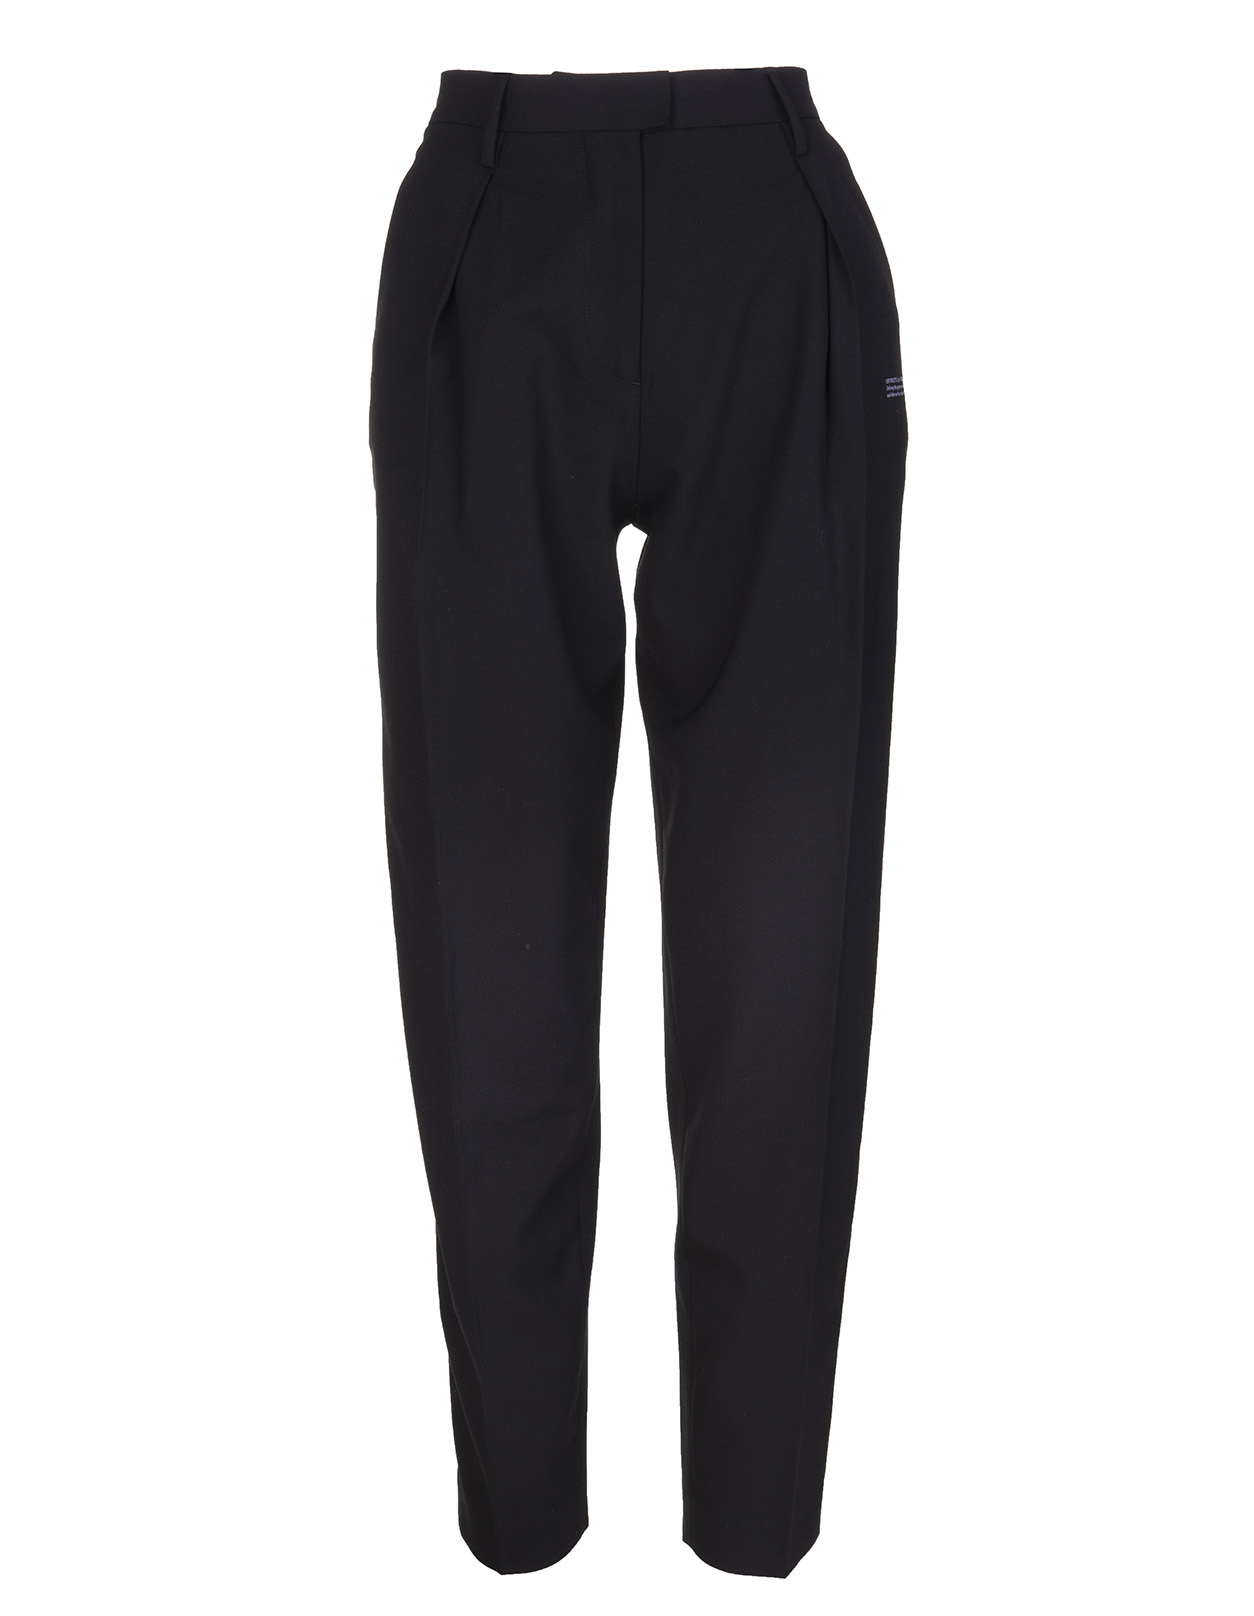 OFF-WHITE Woman Black Tapered Stretch Wool Trousers